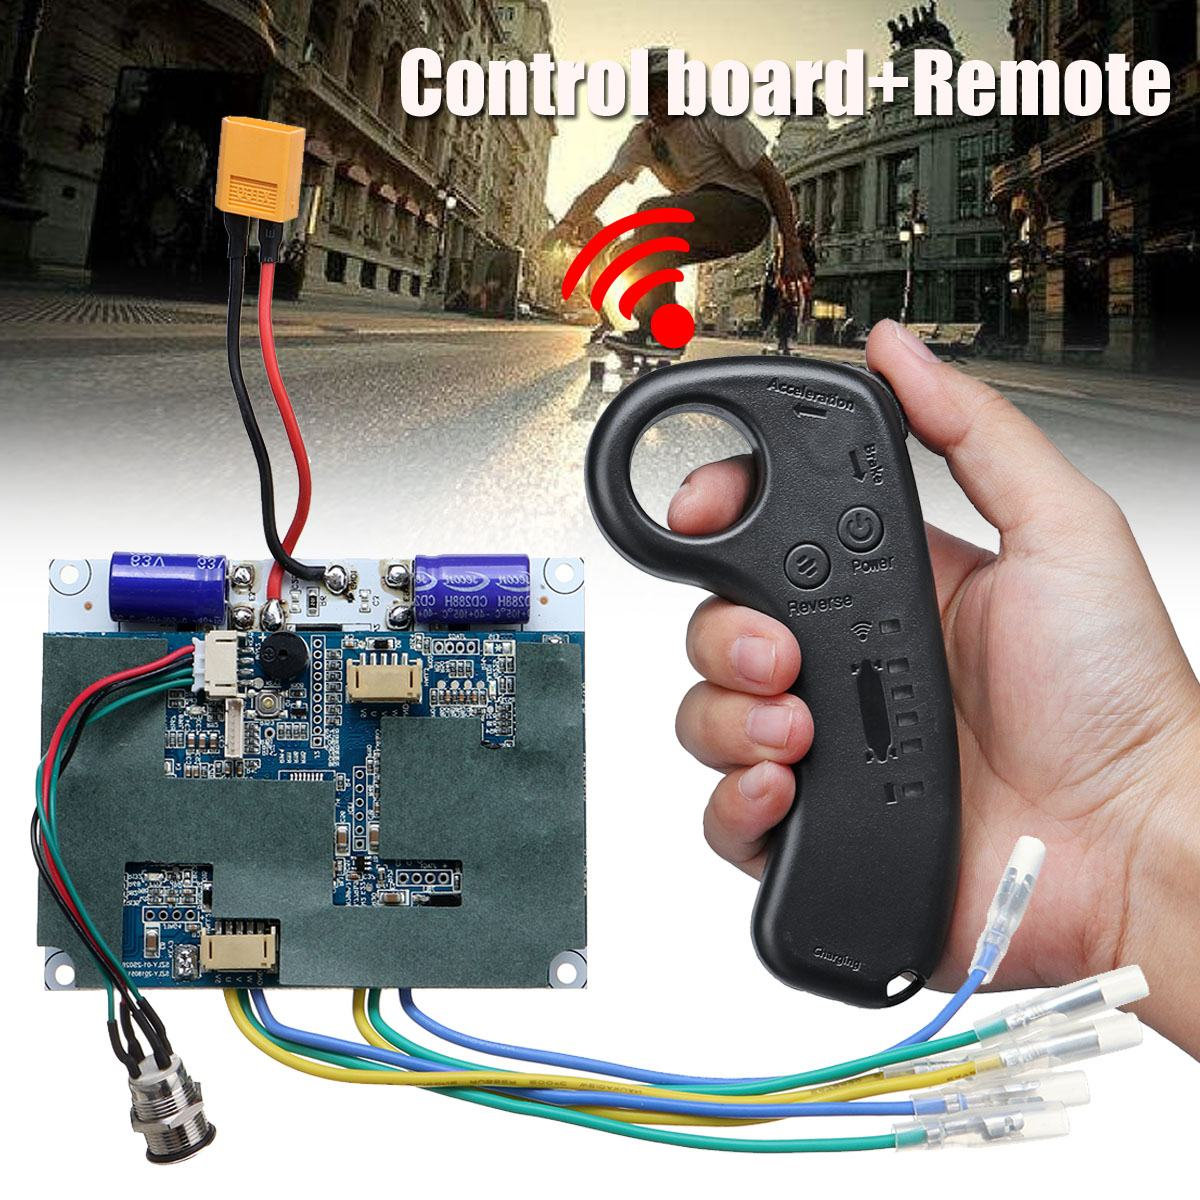 36V Dual Motor Electric Skateboard Longboard Drive Controller ESC Hub motor Mini Remote Electric Skateboard Accessories36V Dual Motor Electric Skateboard Longboard Drive Controller ESC Hub motor Mini Remote Electric Skateboard Accessories